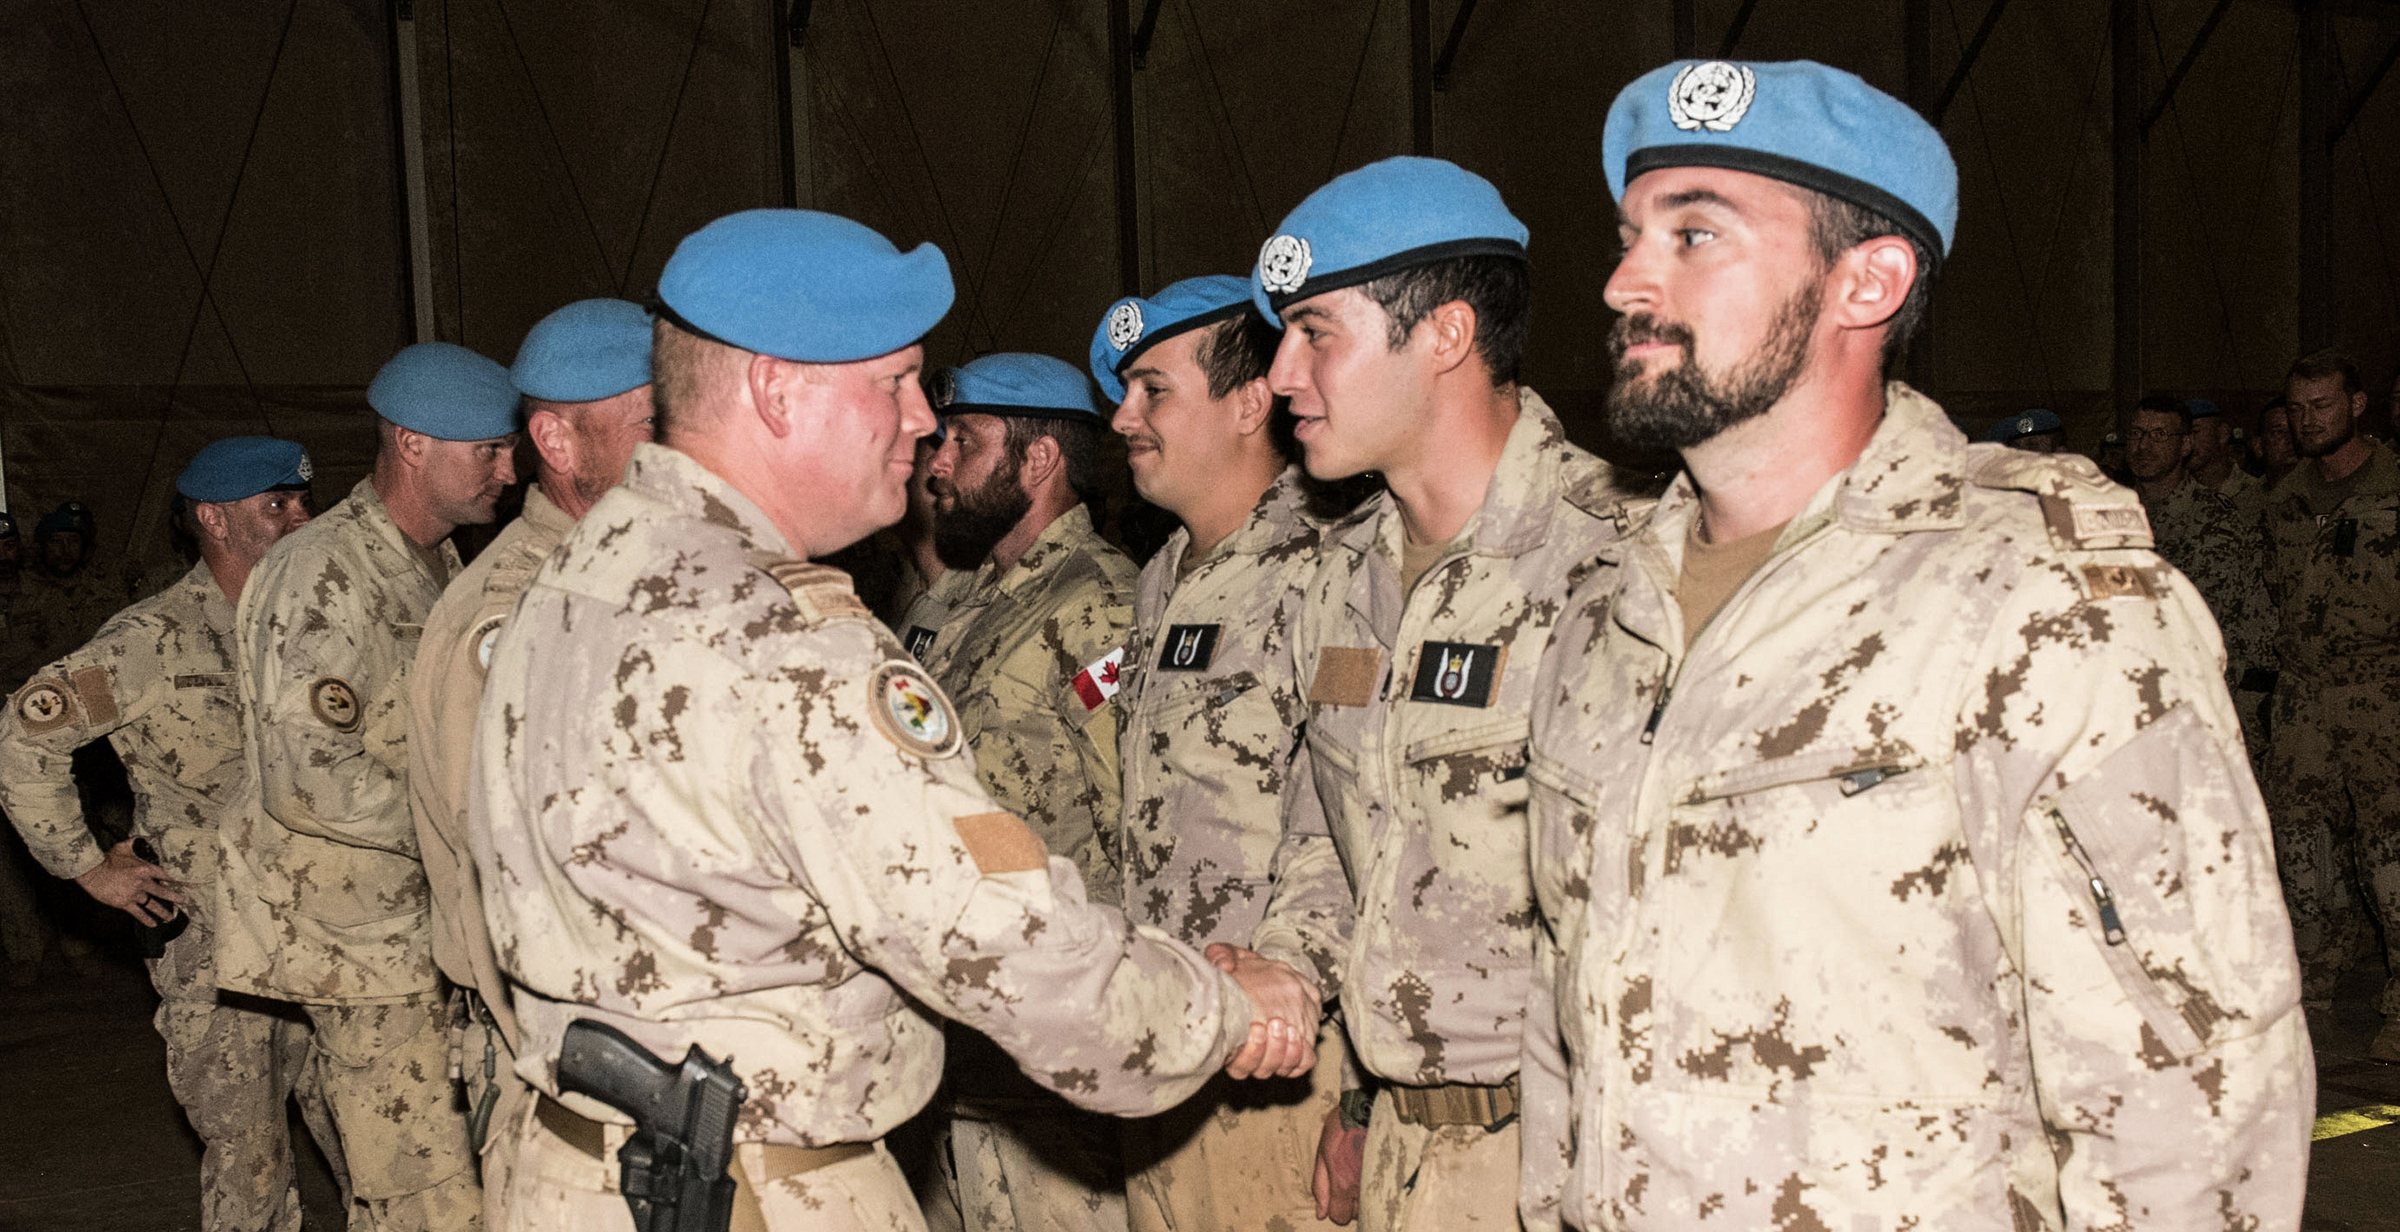 At Camp Castor in Gao, Mali, CH-146 Griffon and CH-147F Chinook door gunners deployed on Operation Presence, as part of the UN mission in Mali, received their interim tactical aviation door gunner badges on January 10, 2019. PHOTO: DND, TM01-2019-0001-16